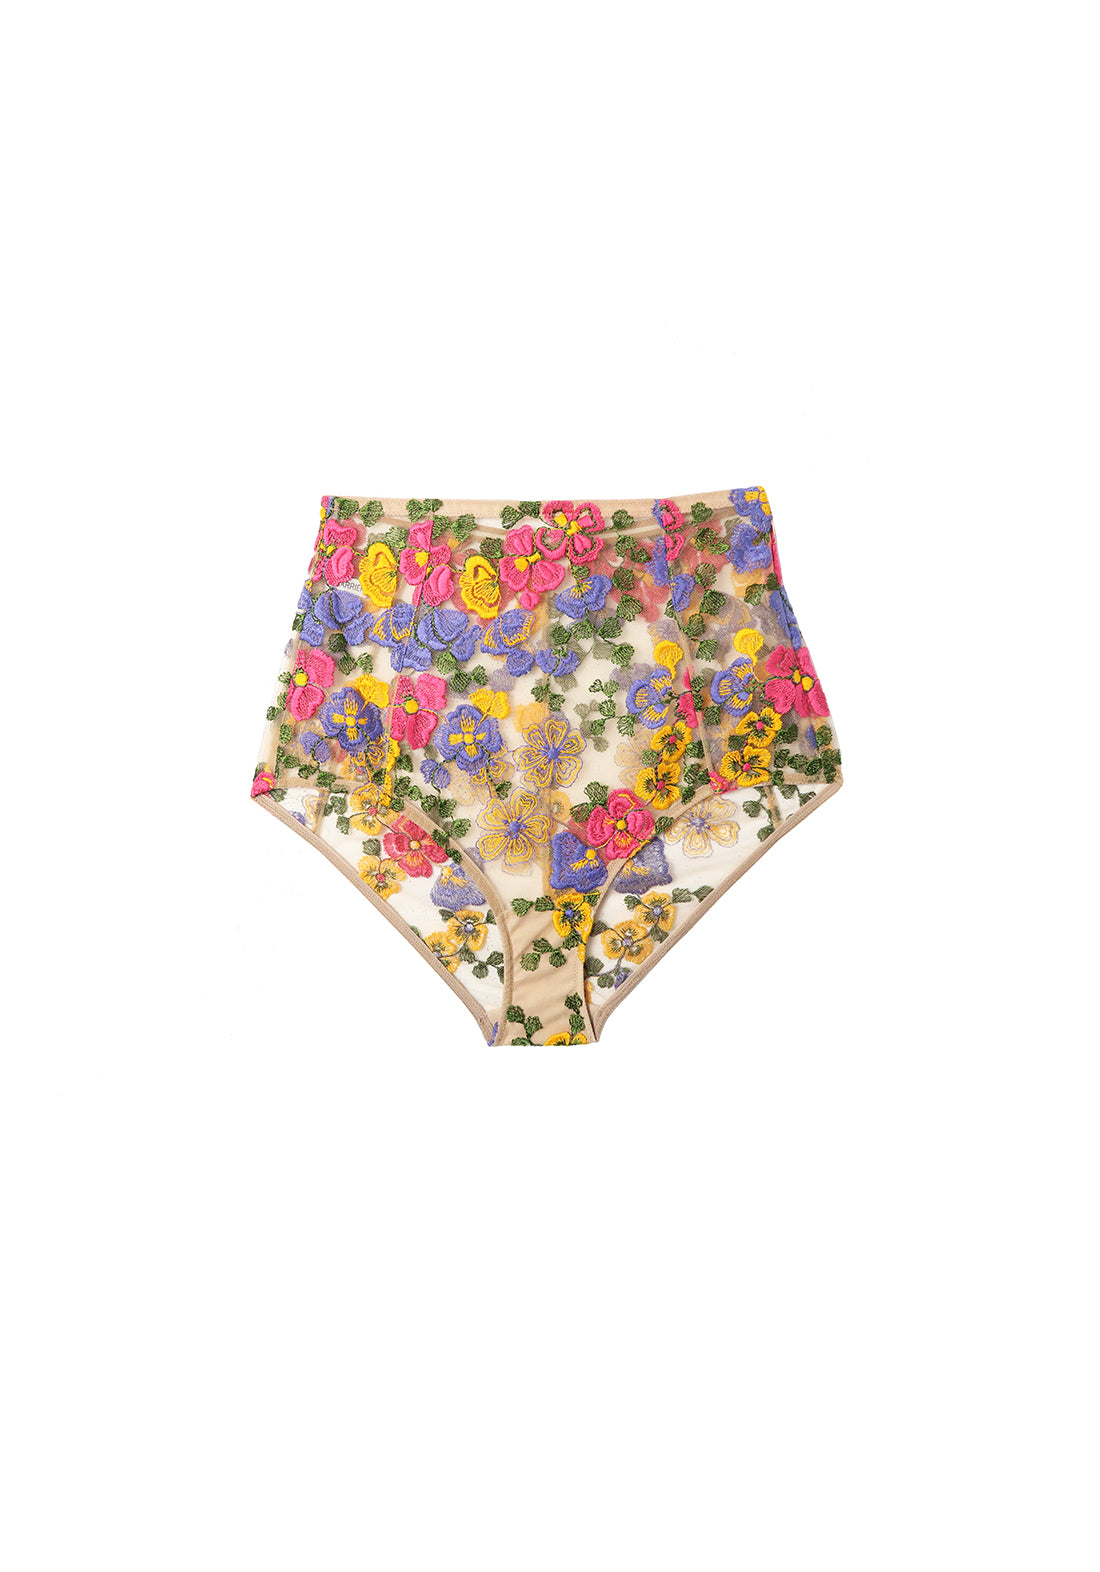 Wonderland Delights High Waist Brief in Tuscan Summer